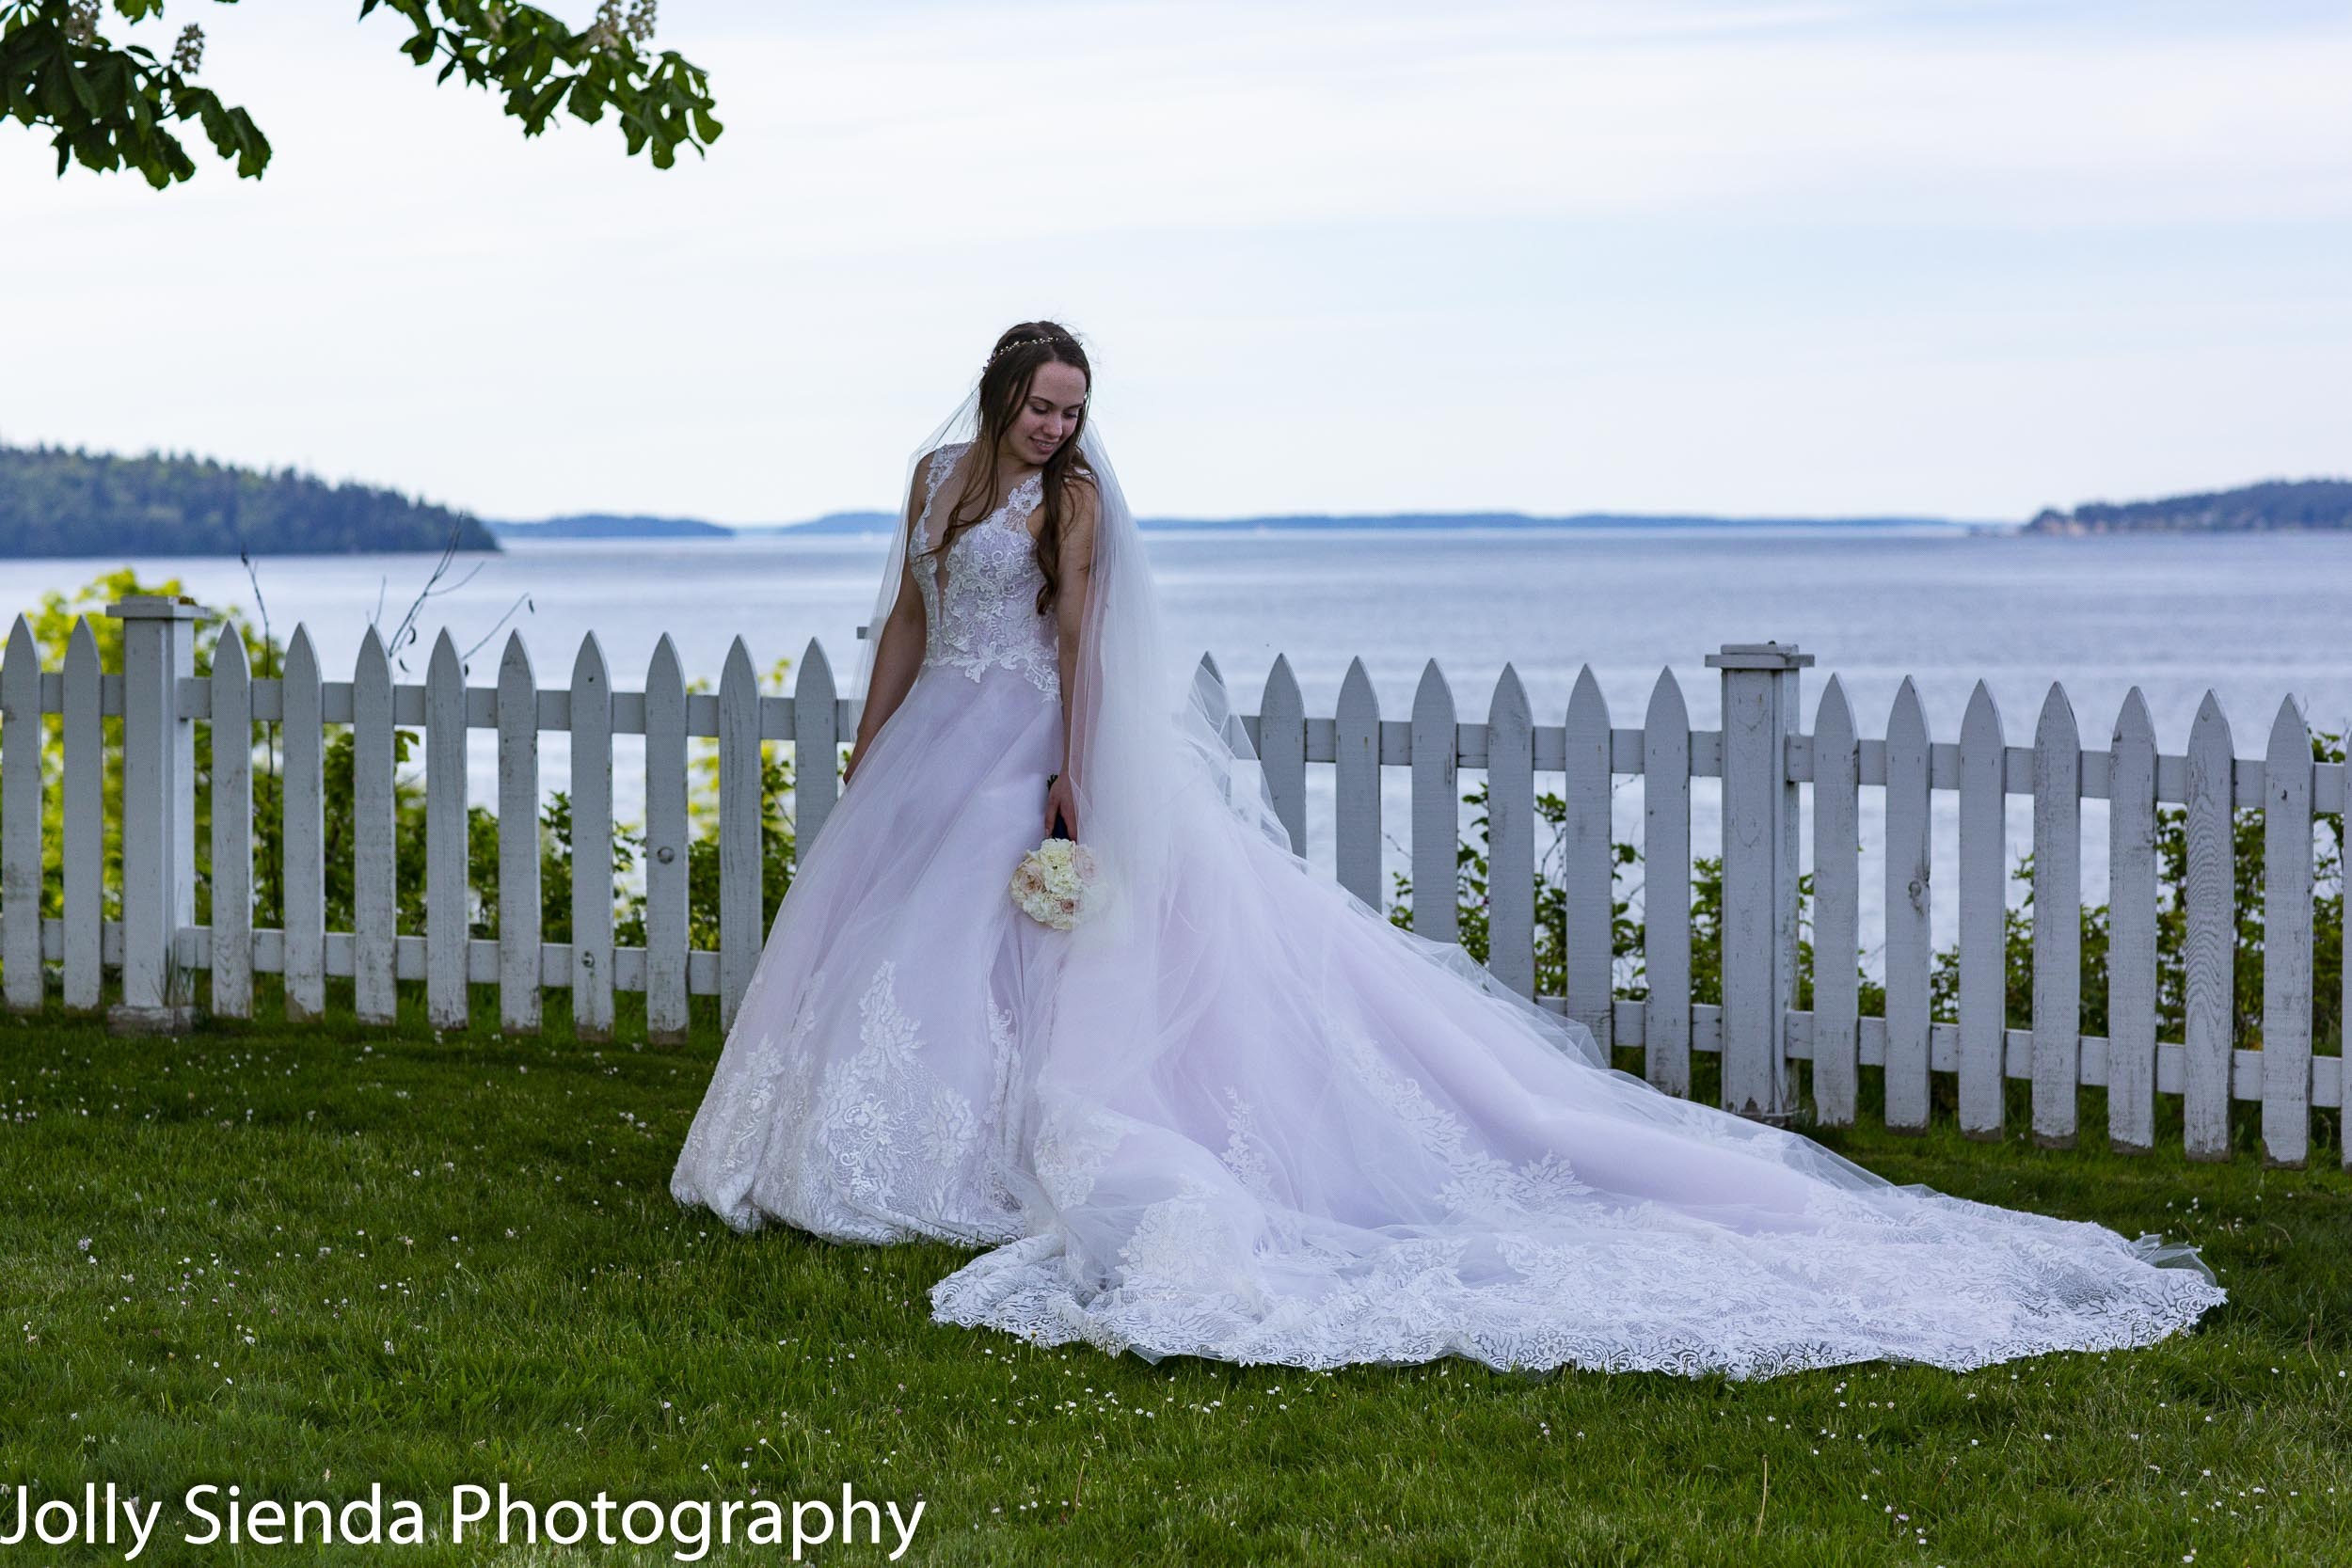 Bridal portrait of Lily at Port Gamble, WA.